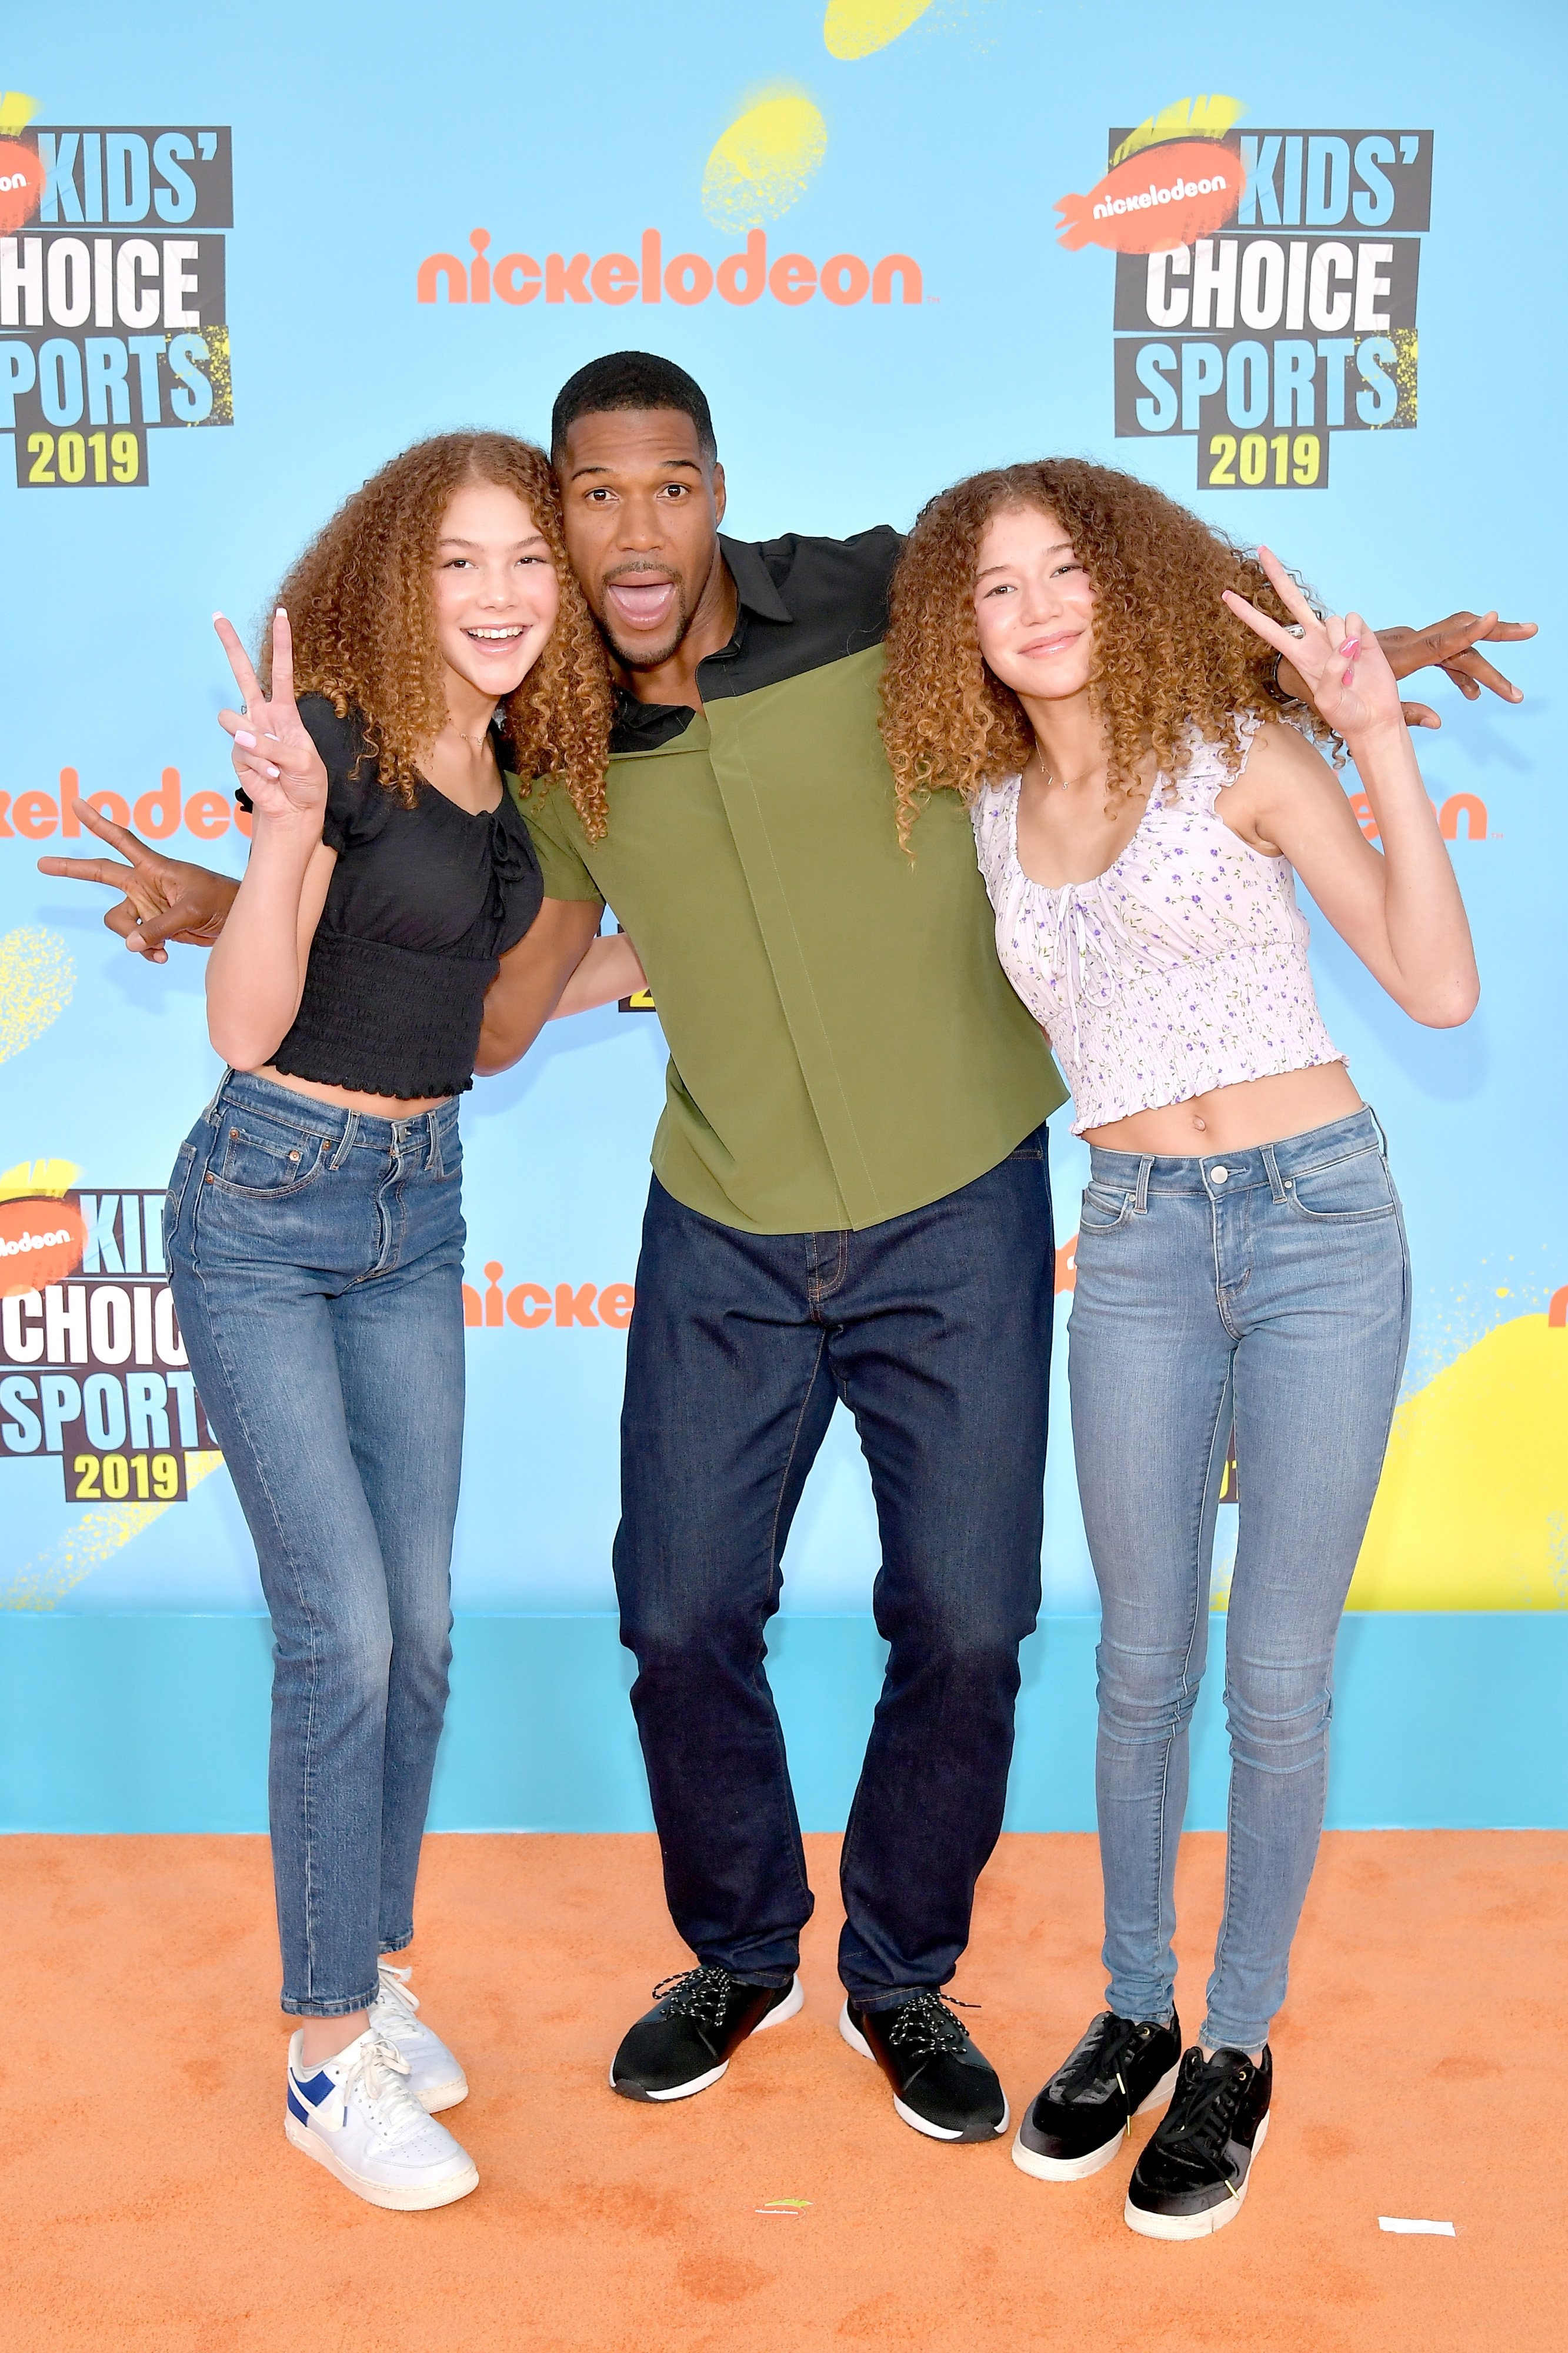 Isabella Strahan, Michael Strahan, and Sophia Strahan at the Nickelodeon Kids' Choice Sports 2019 on July 11, 2019 in Santa Monica, California. | Source: Getty Images